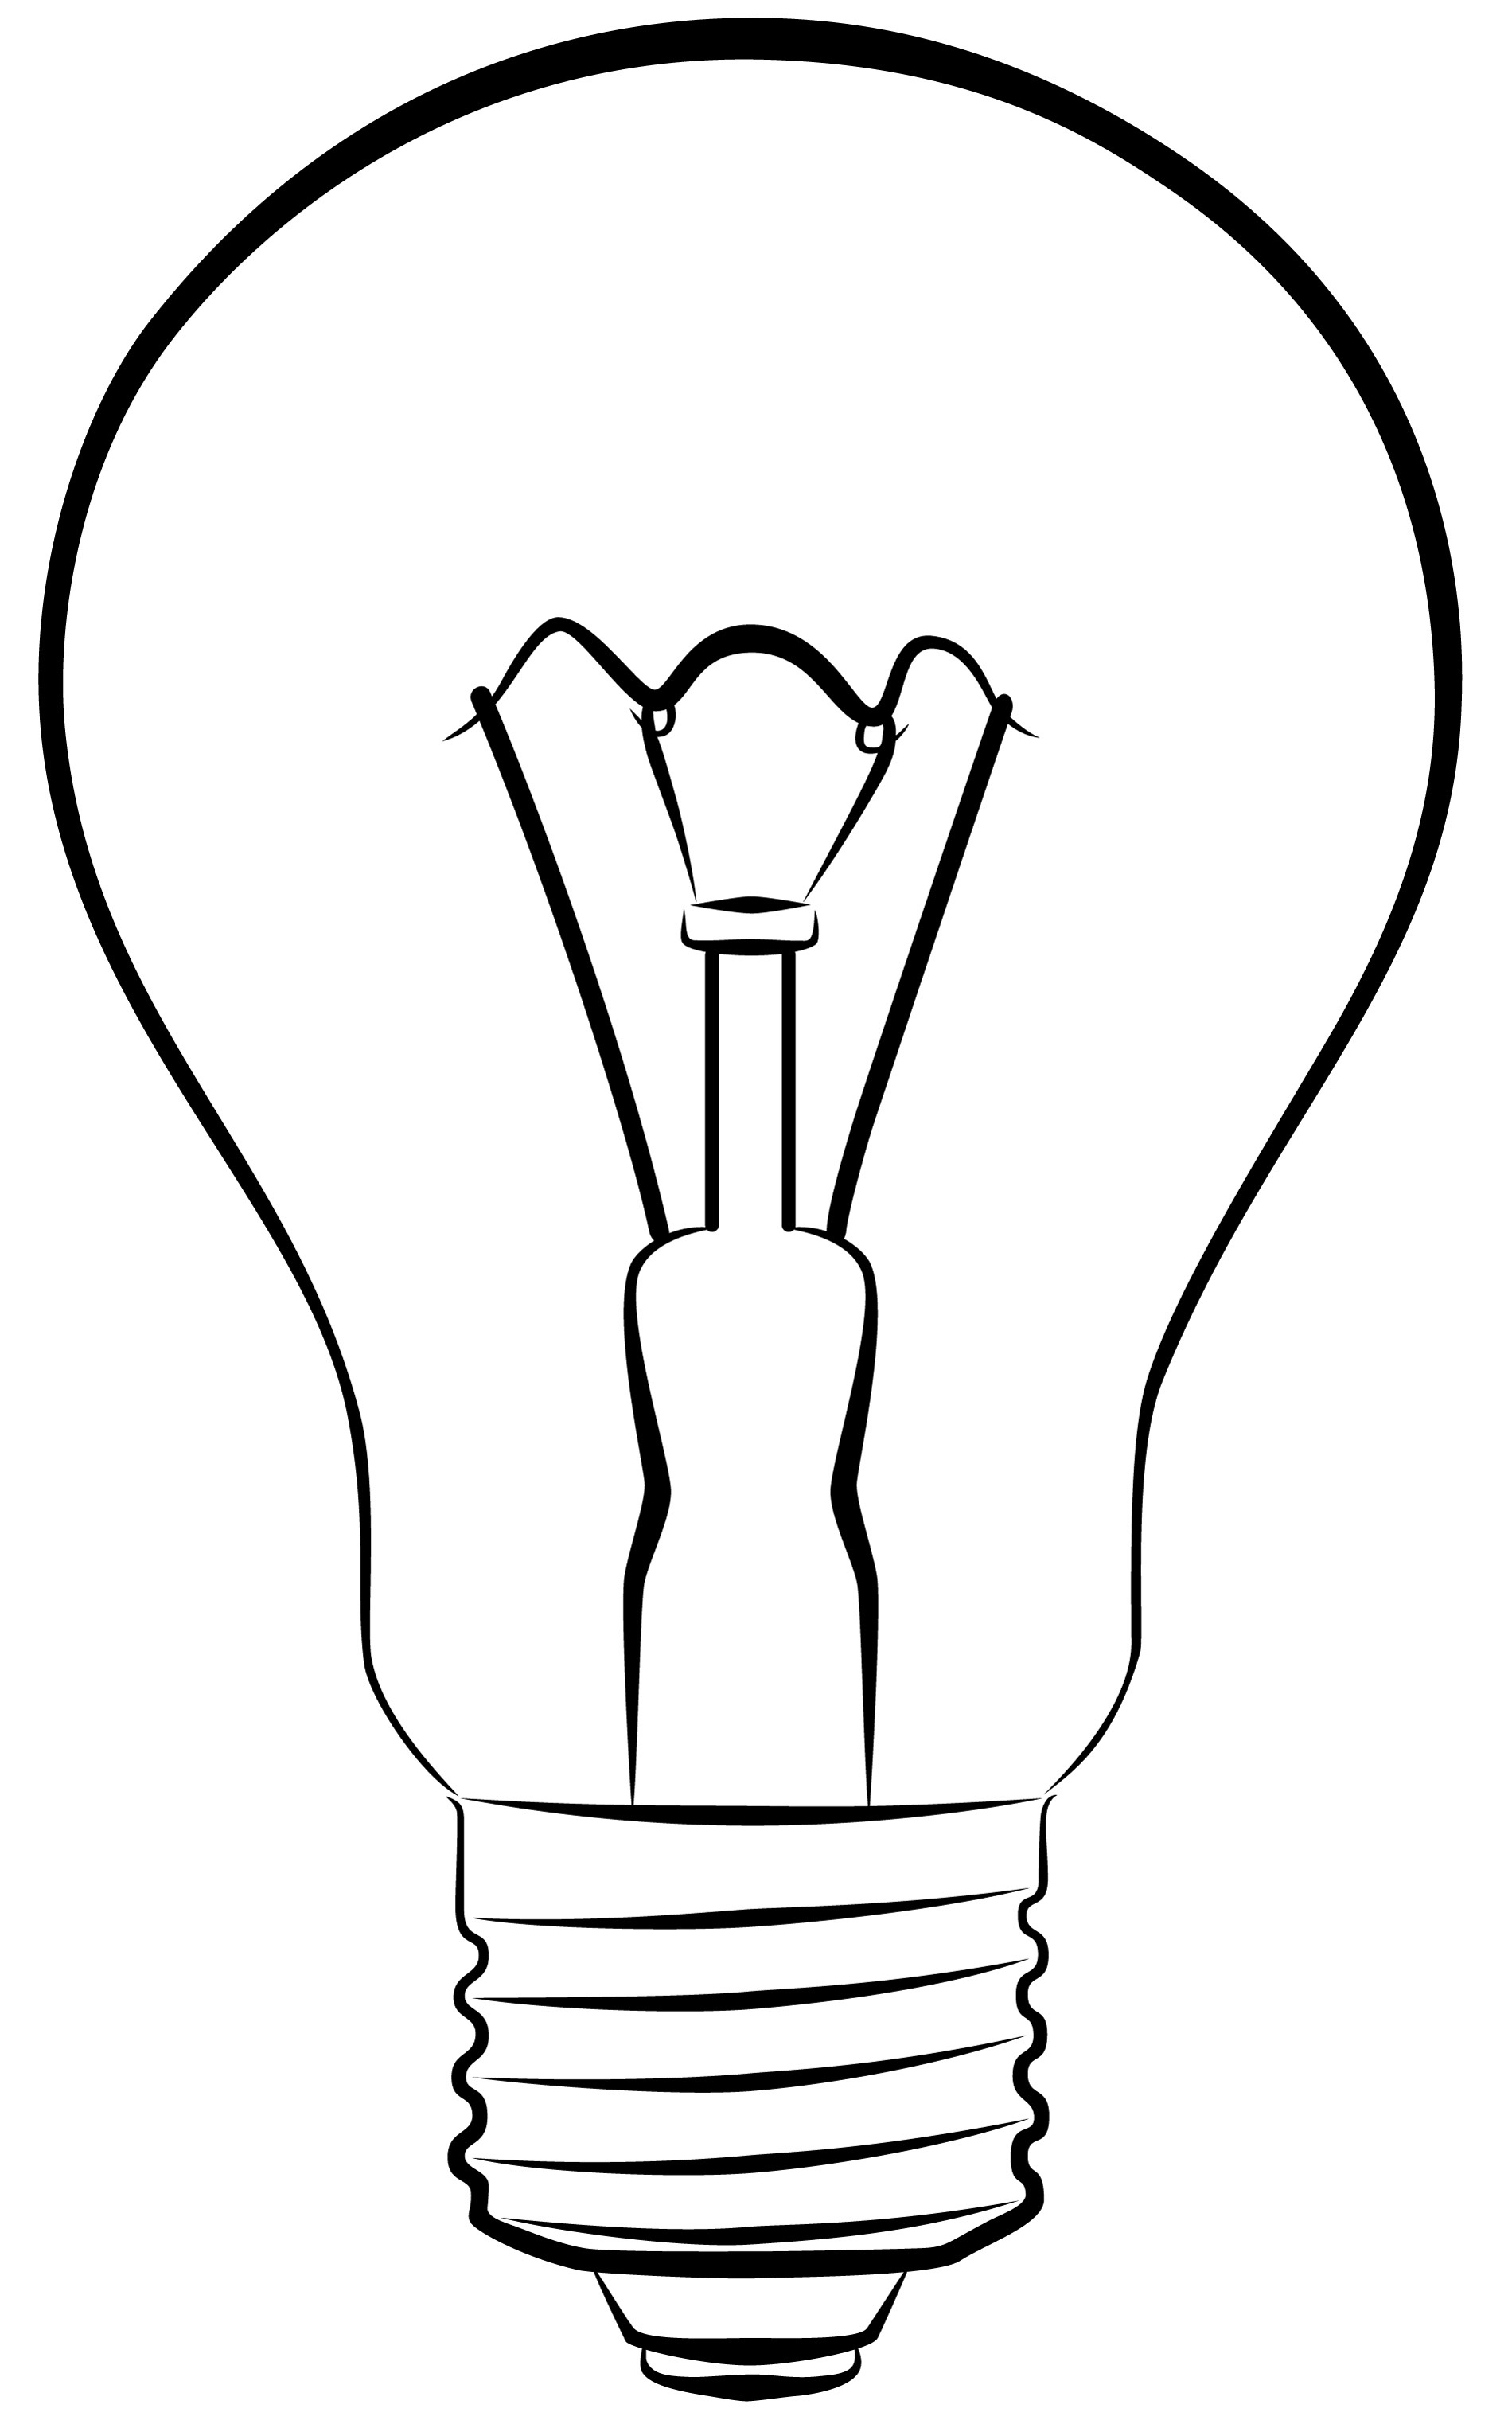 Stop light bulb thinking in weight loss plan!